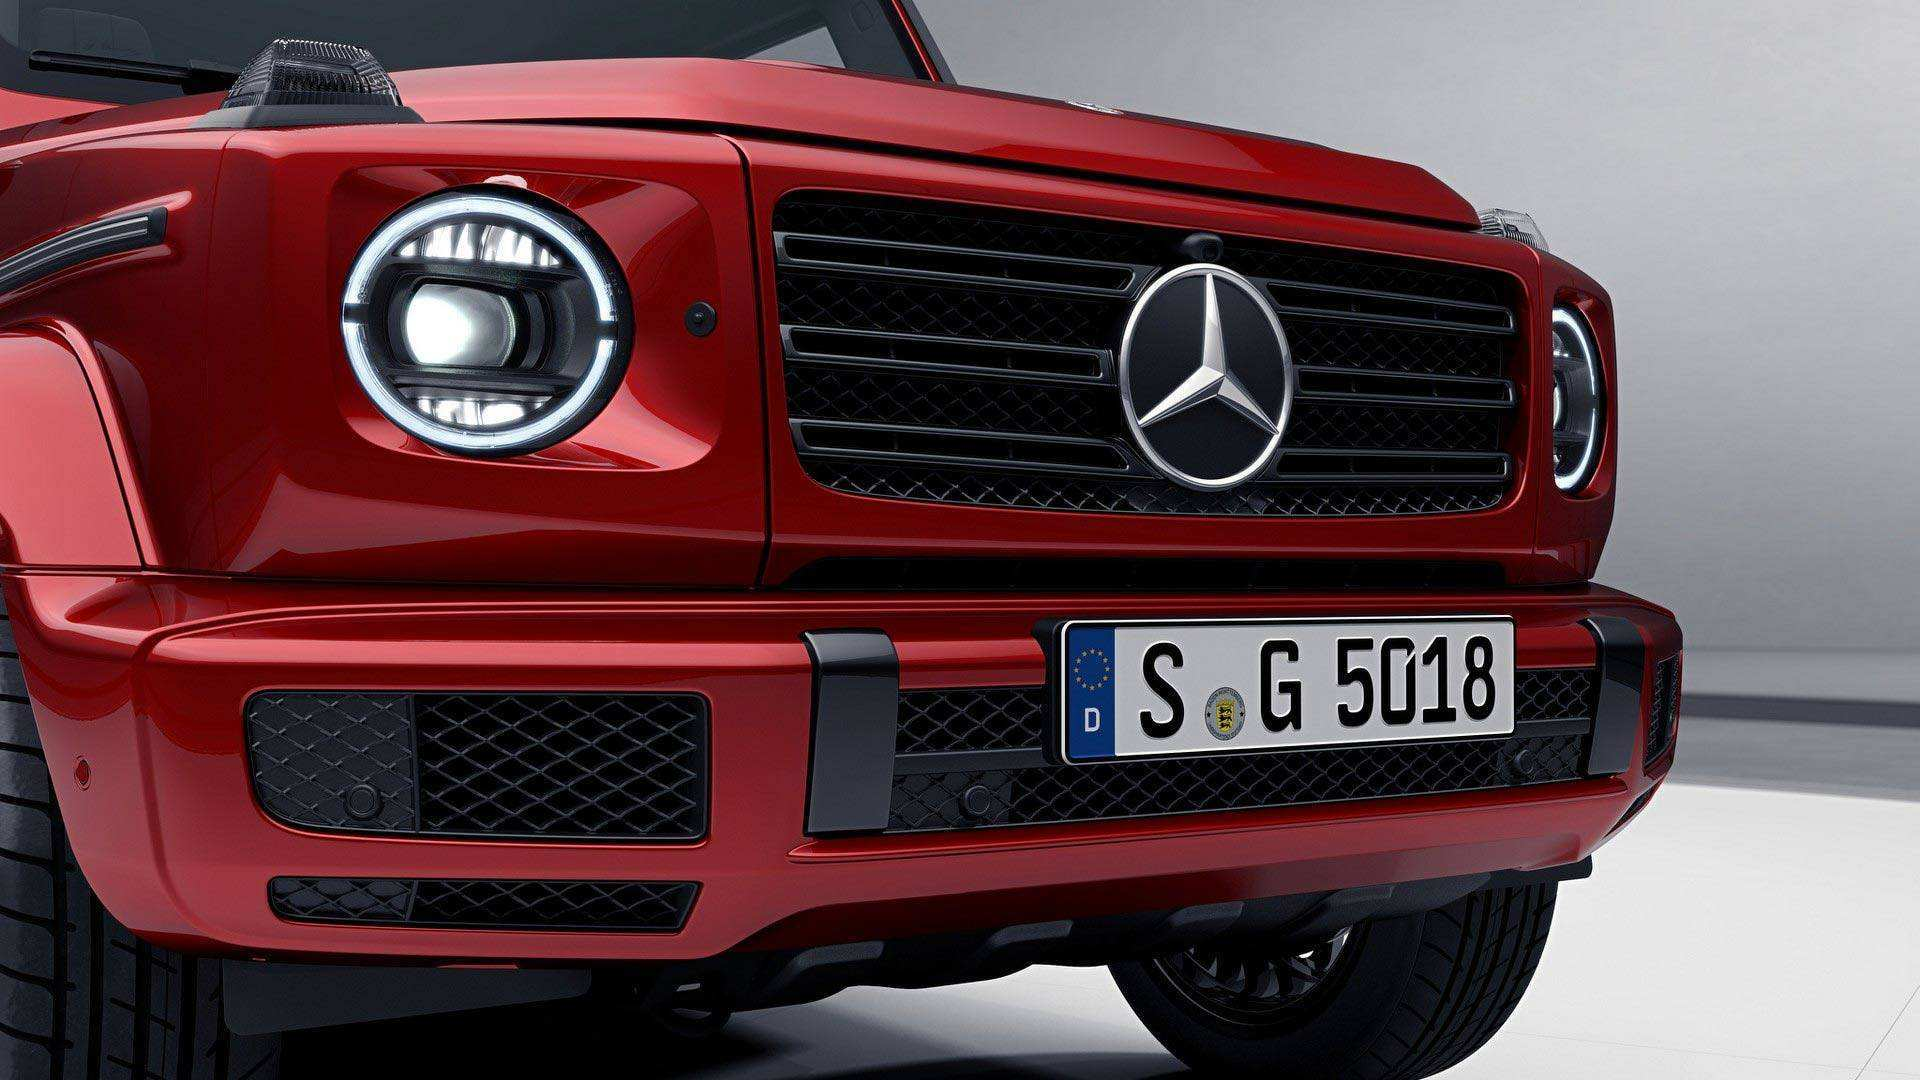 61 Gallery of 2020 Mercedes G Class Exterior Price with 2020 Mercedes G Class Exterior